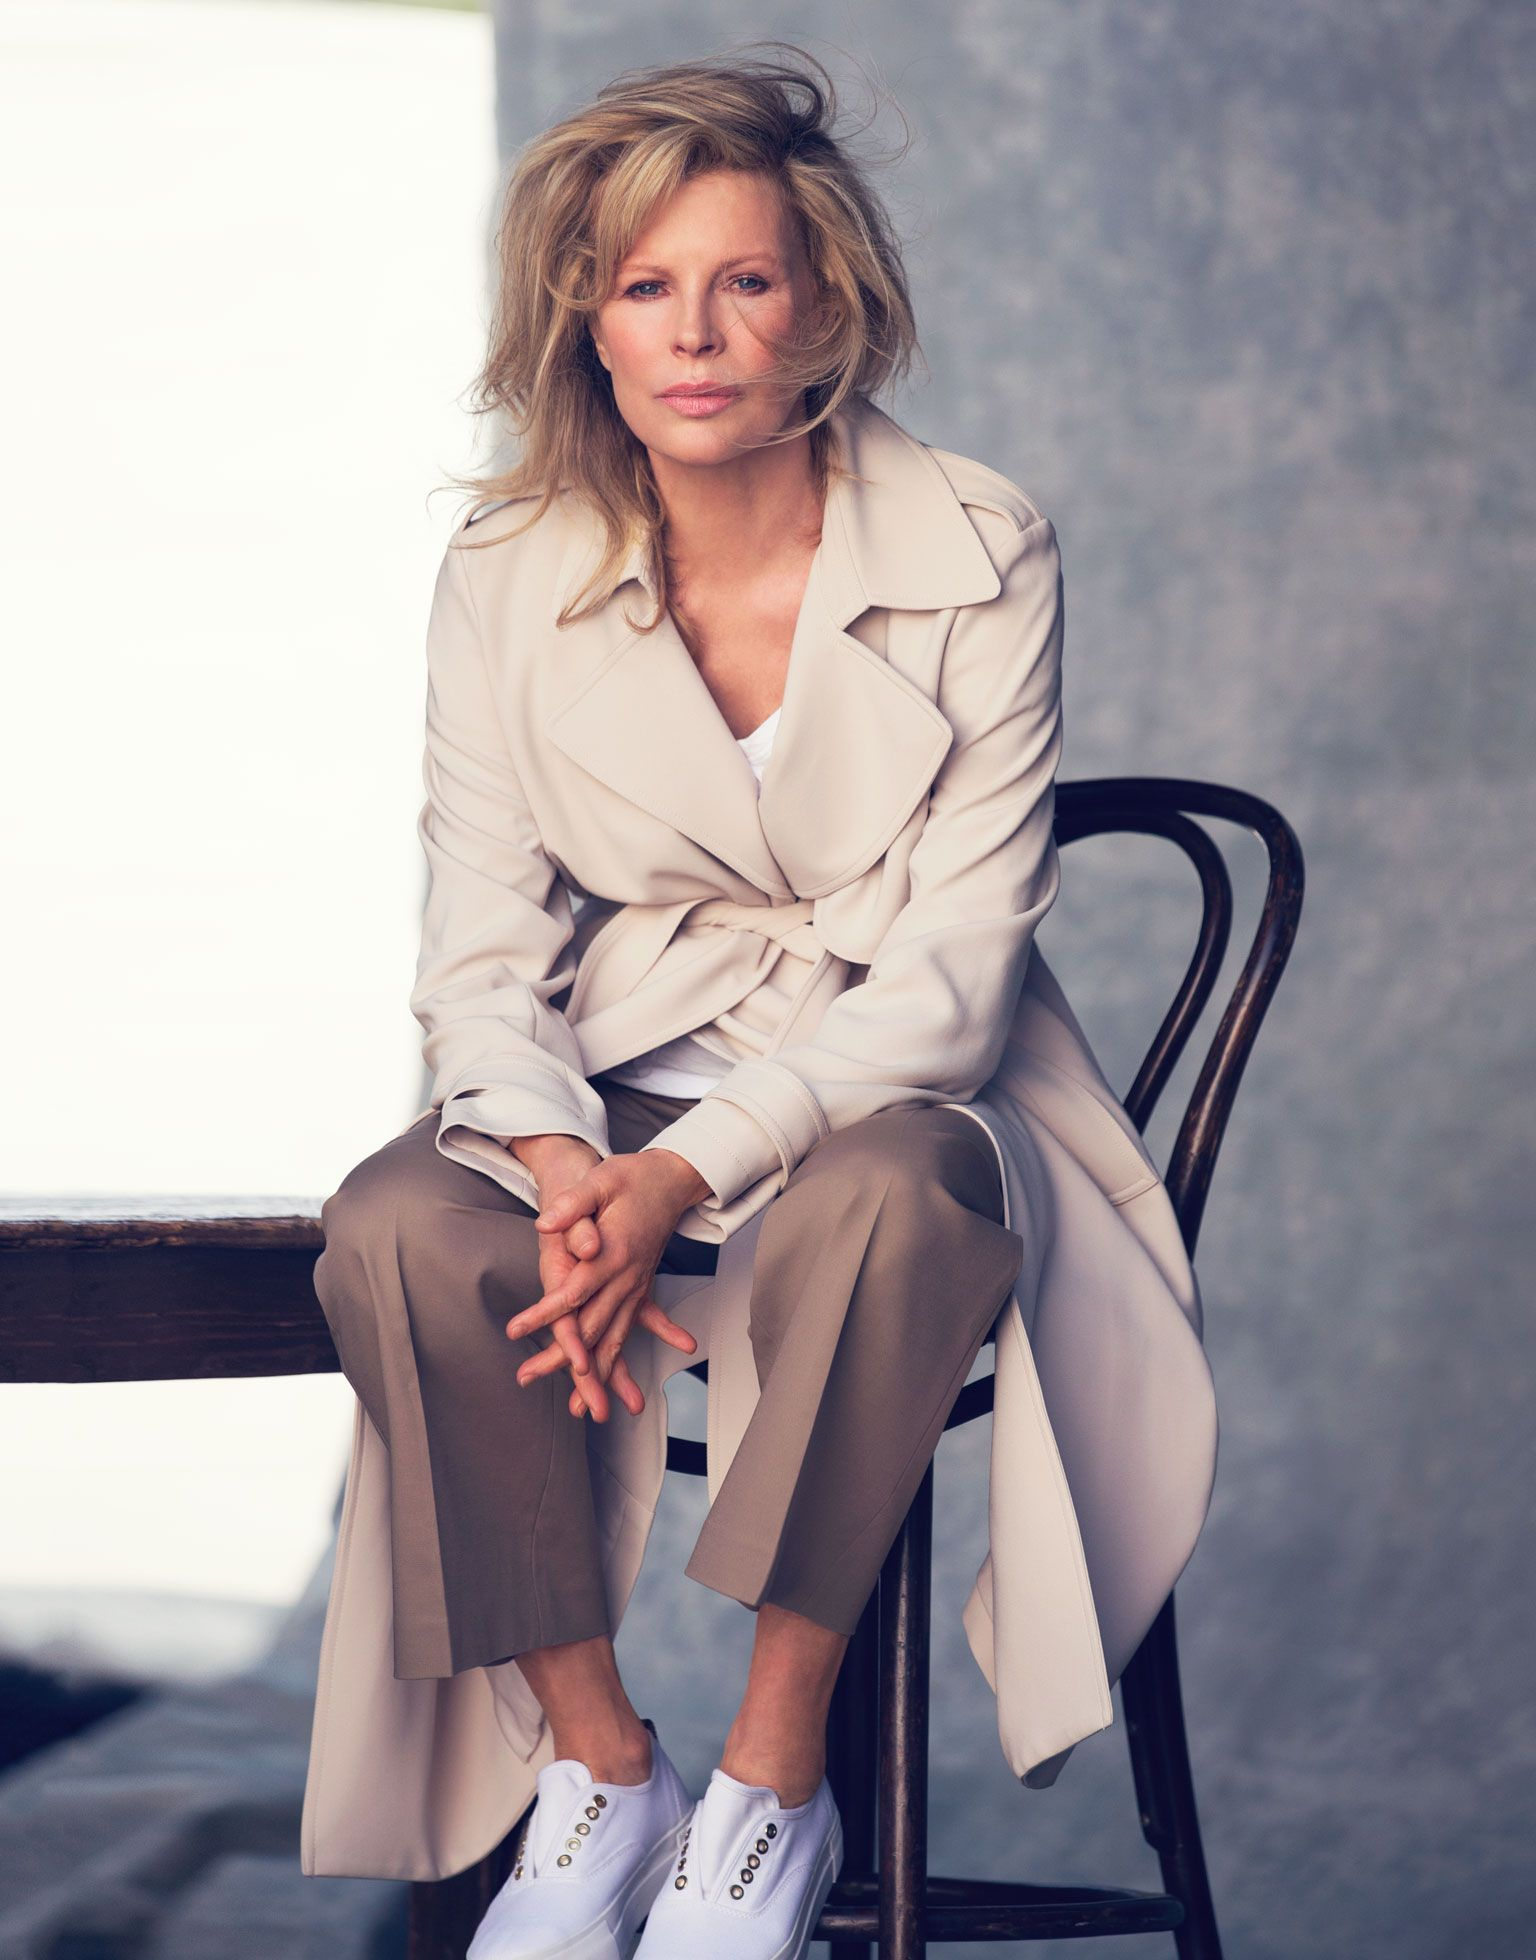 Image result for Kim Basinger new photo shoots 2020